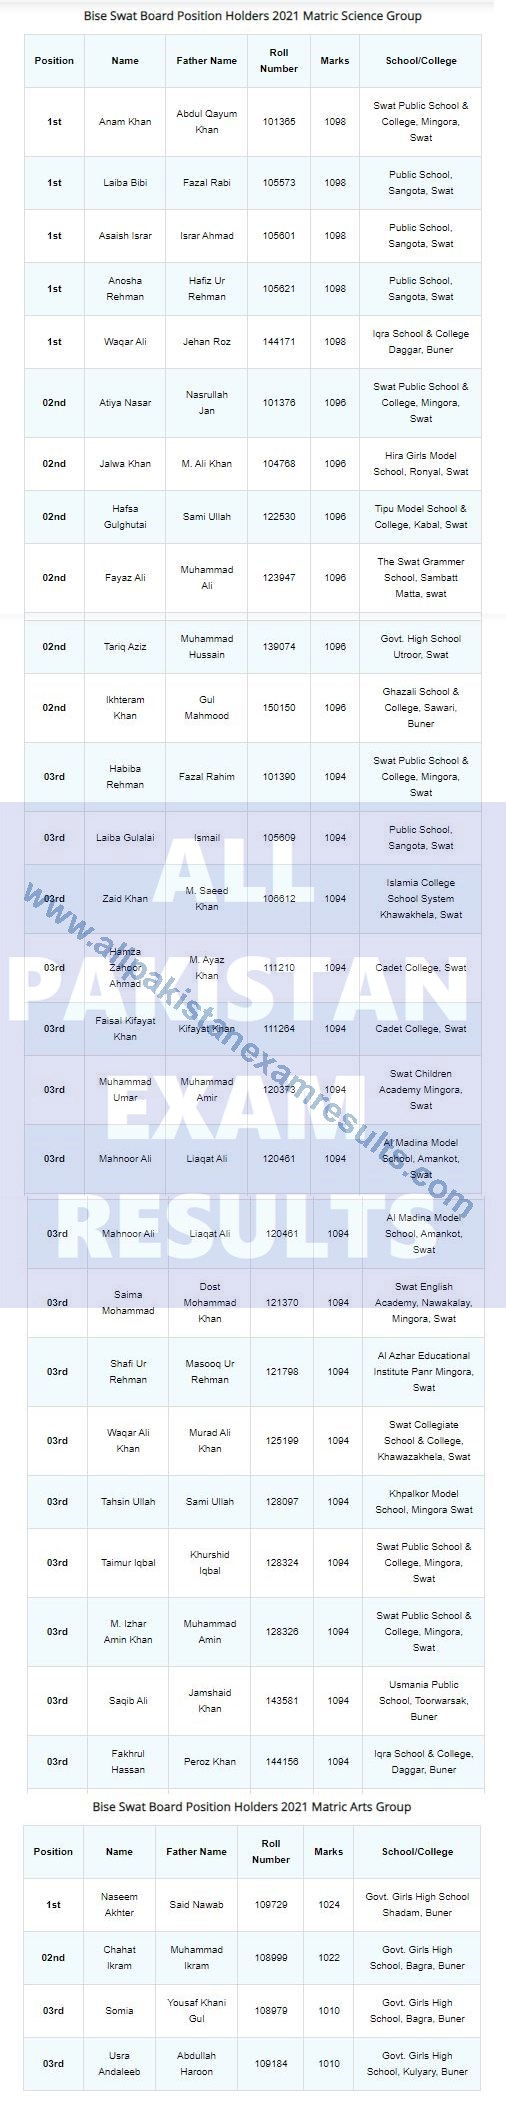 Top Position Holders Matric 2021 Swat Board